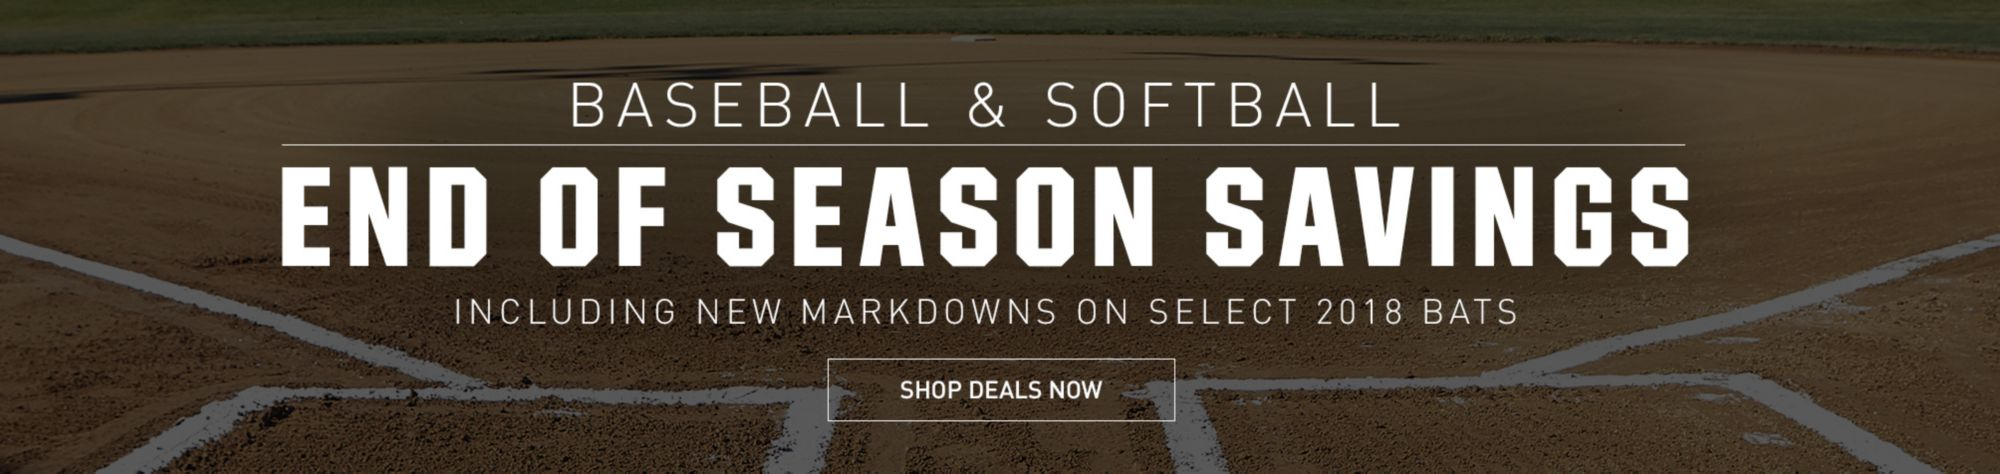 Baseball & Softball END OF SEASON SAVINGS Including New Markdowns on Select 2018 Bats Shop Deals Now